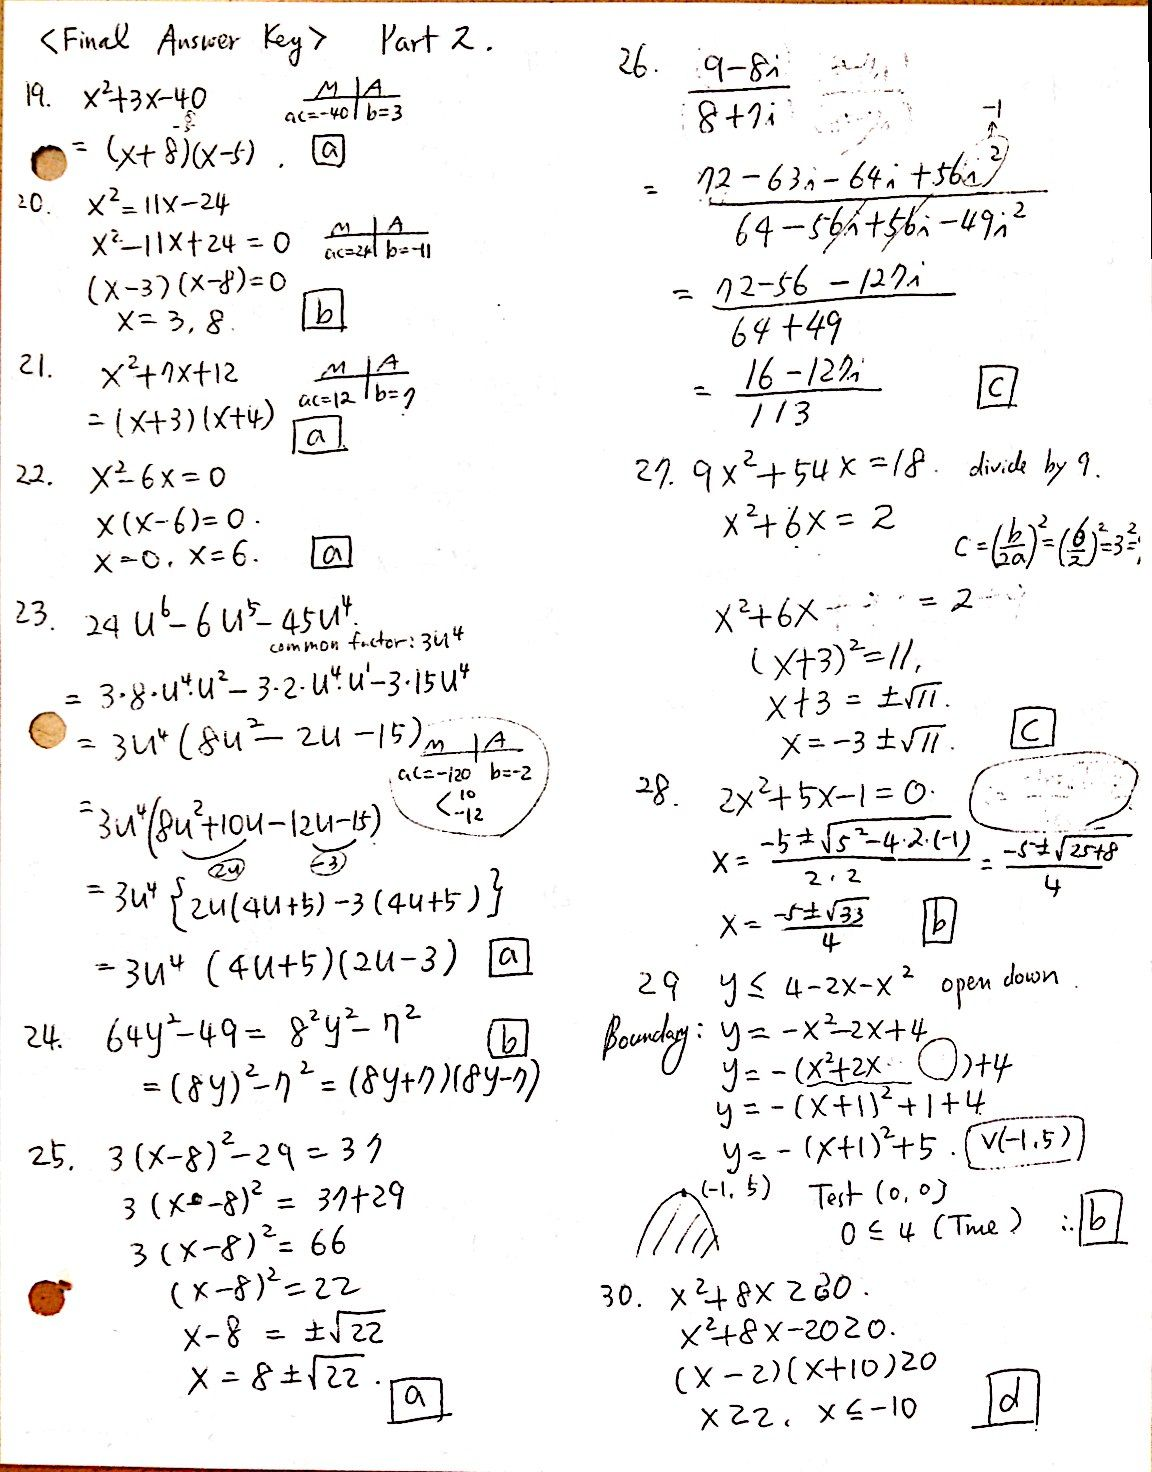 Worksheet Answers For Math Problems worksheet answers for math problems mikyu free mr suominens homepage january 2013 next the last set of